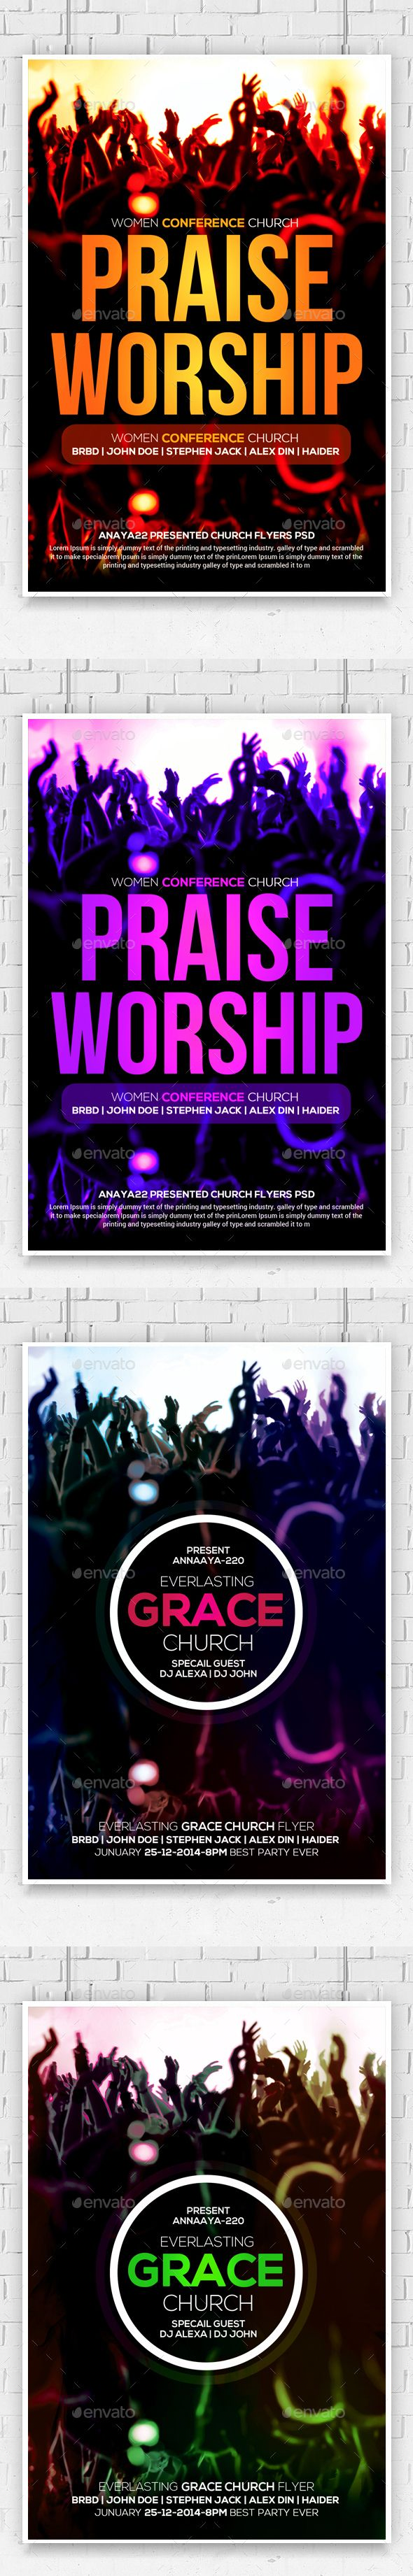 praise and worship church flyers bundle concerts praise and praise and worship church flyers bundle photoshop psd worship concert available here